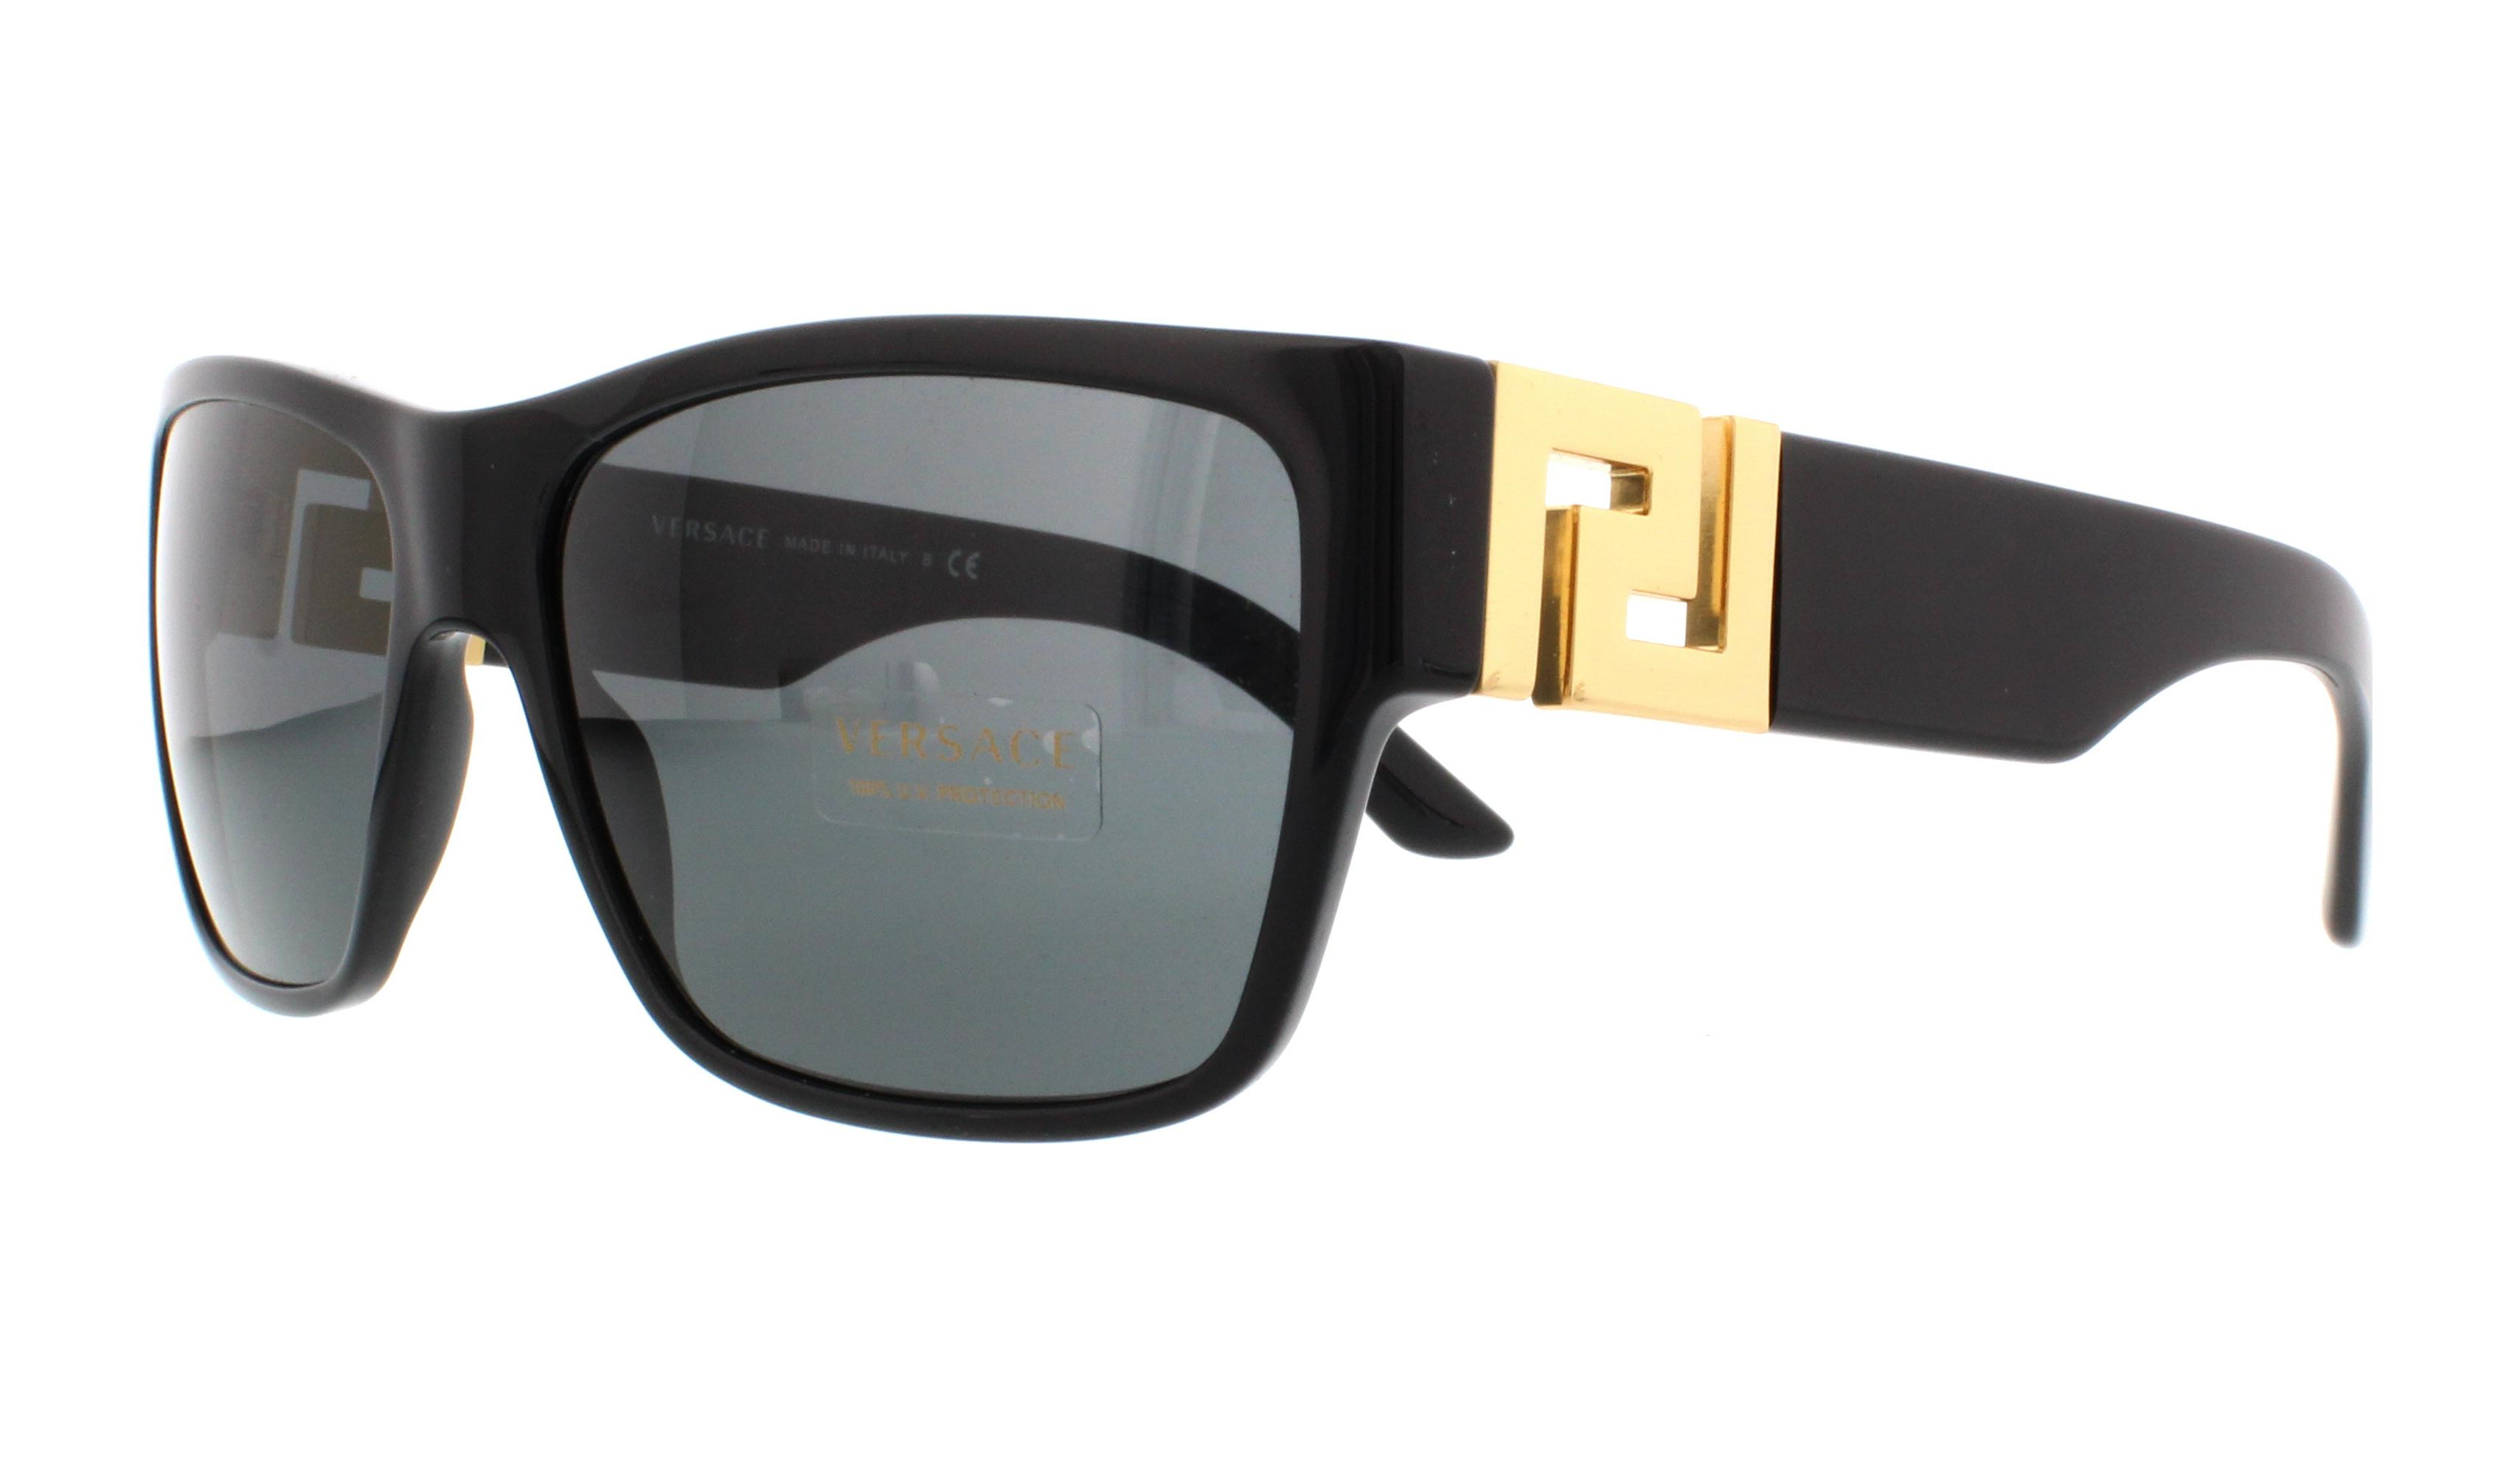 d9f6d6c1ddc8 Versace Sunglasses Ve4296